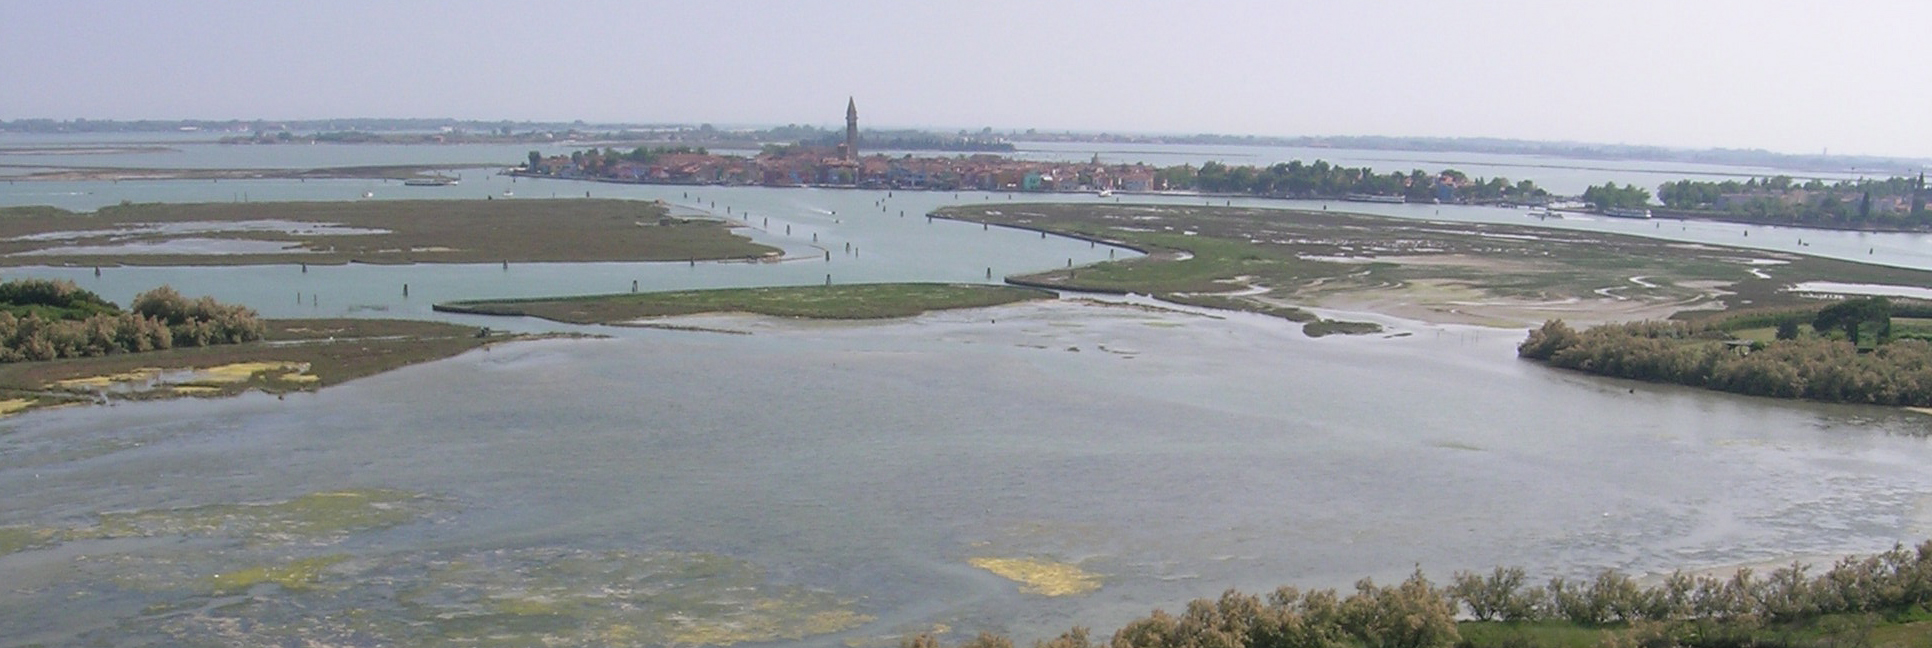 View from Torcello (photograph by Marjorie Och)